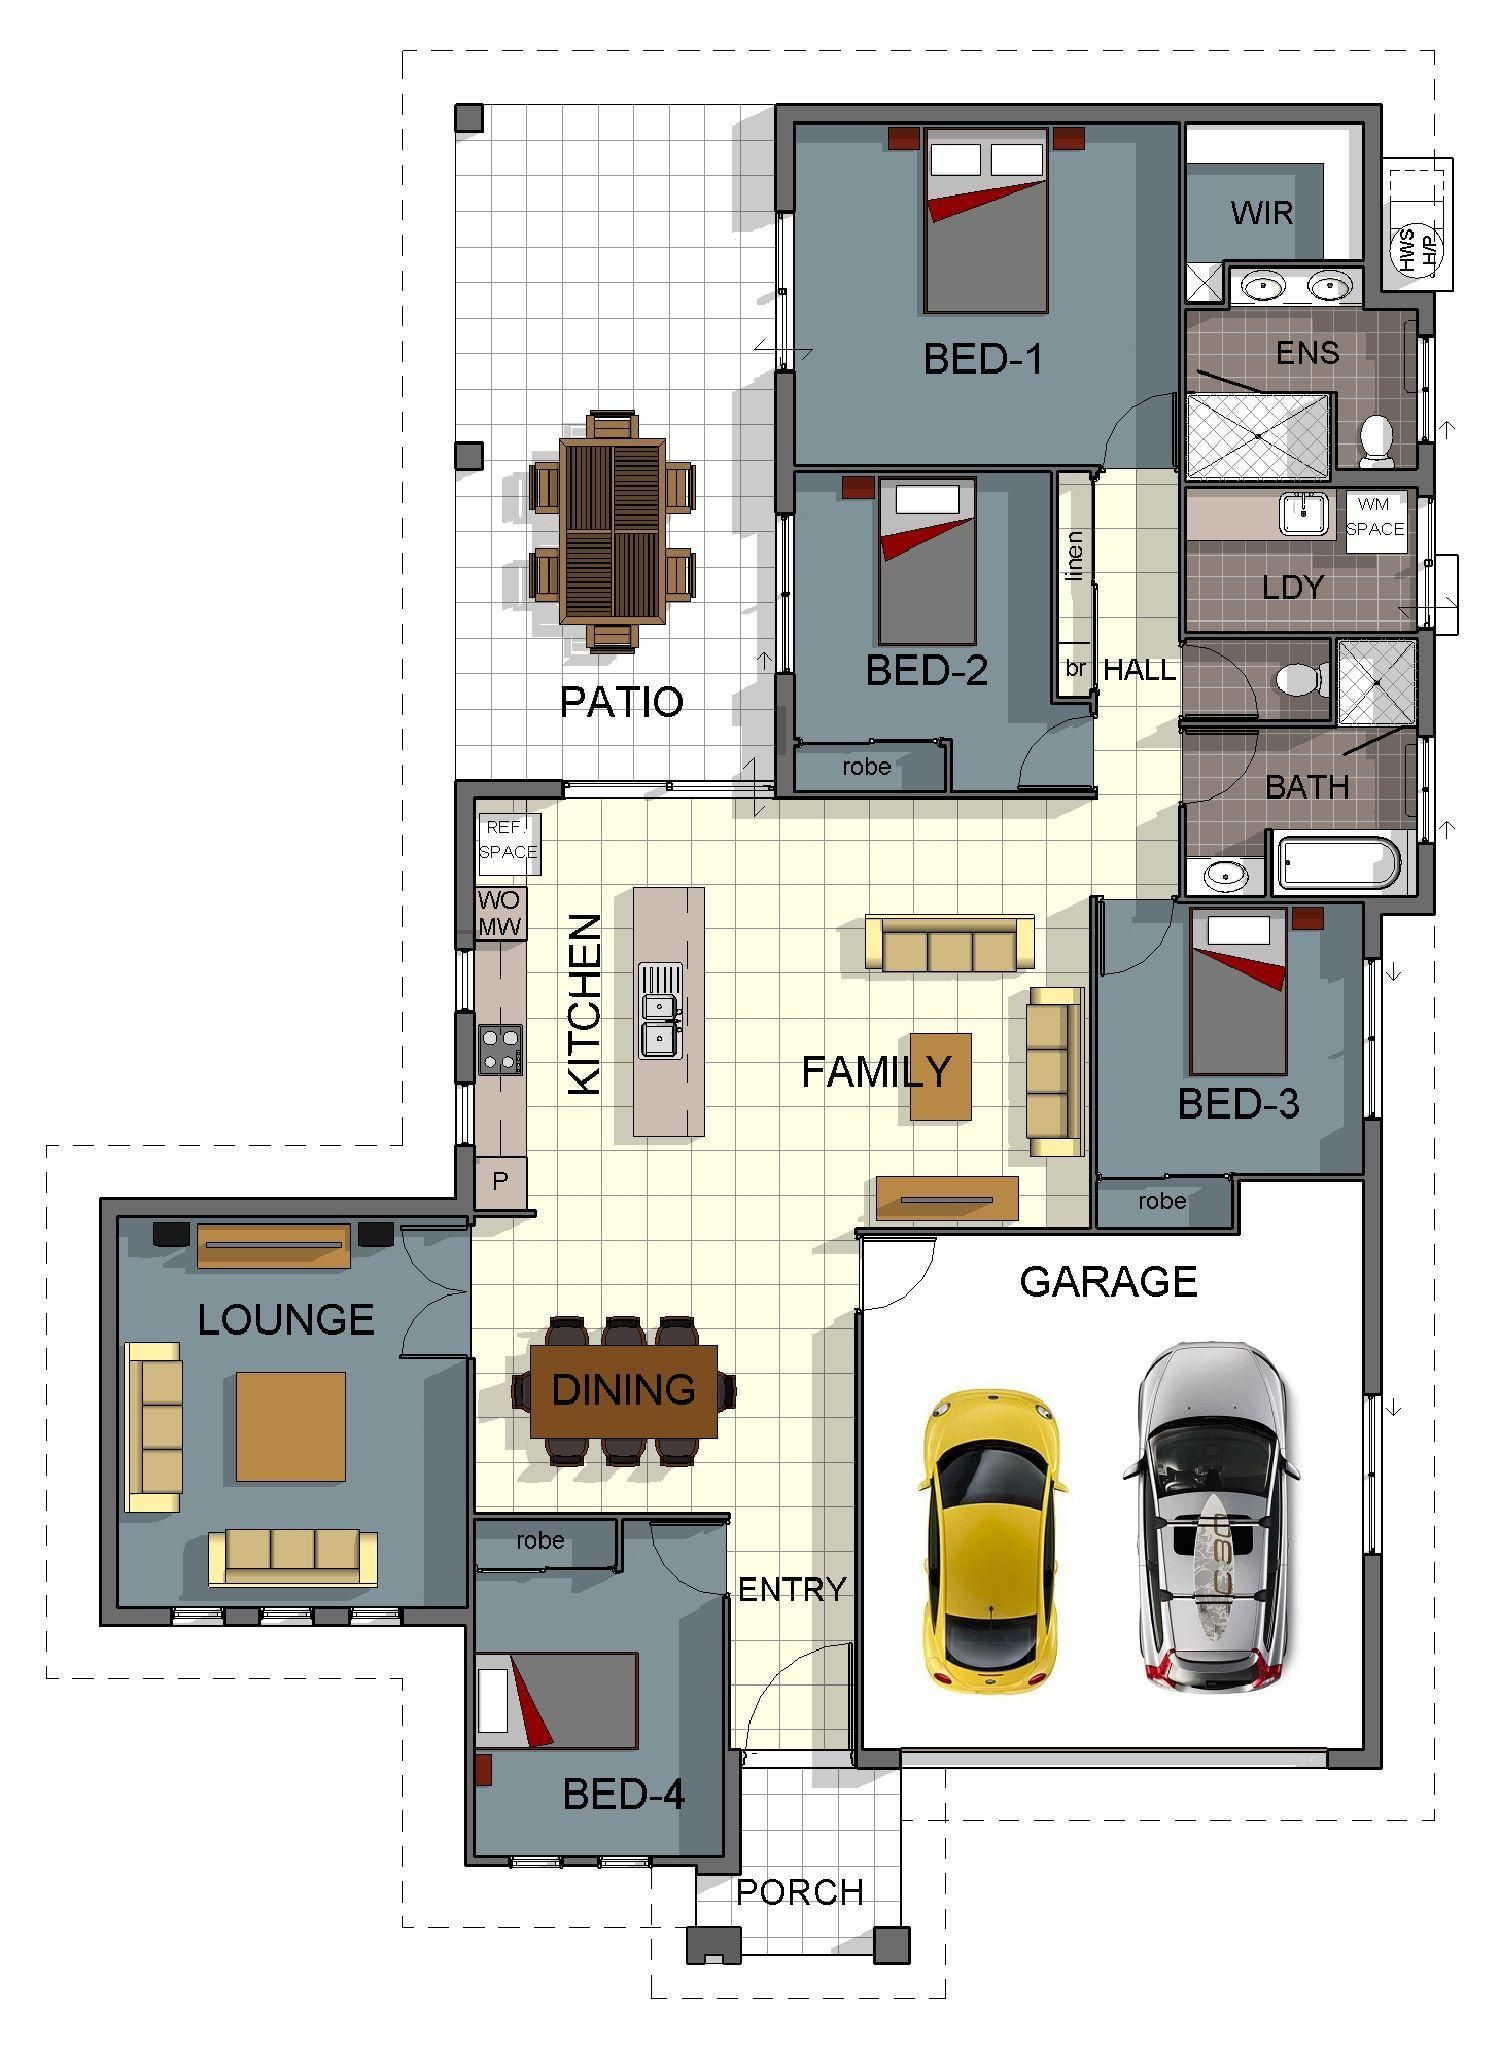 Single storey 4 bedroom house floorplan with additional - Single story 4 bedroom modern house plans ...